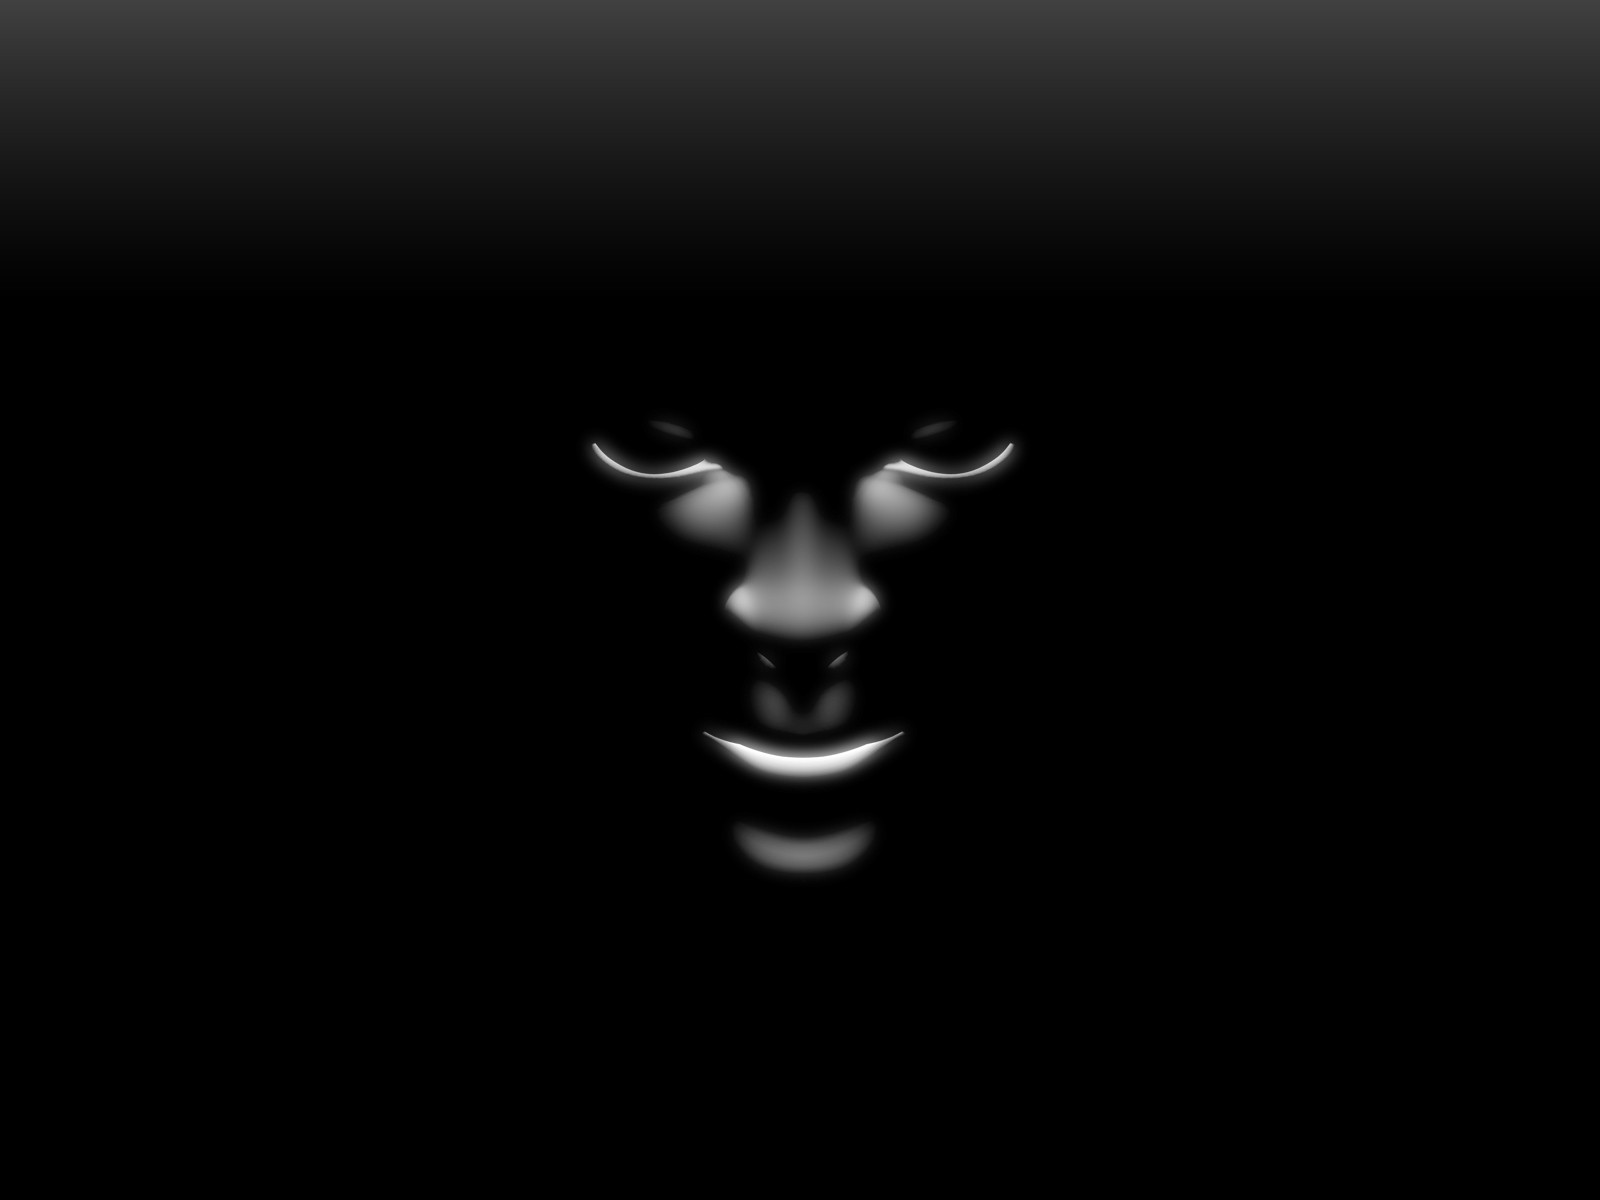 Black Images Shadow Face Hd Wallpaper And Background Photos